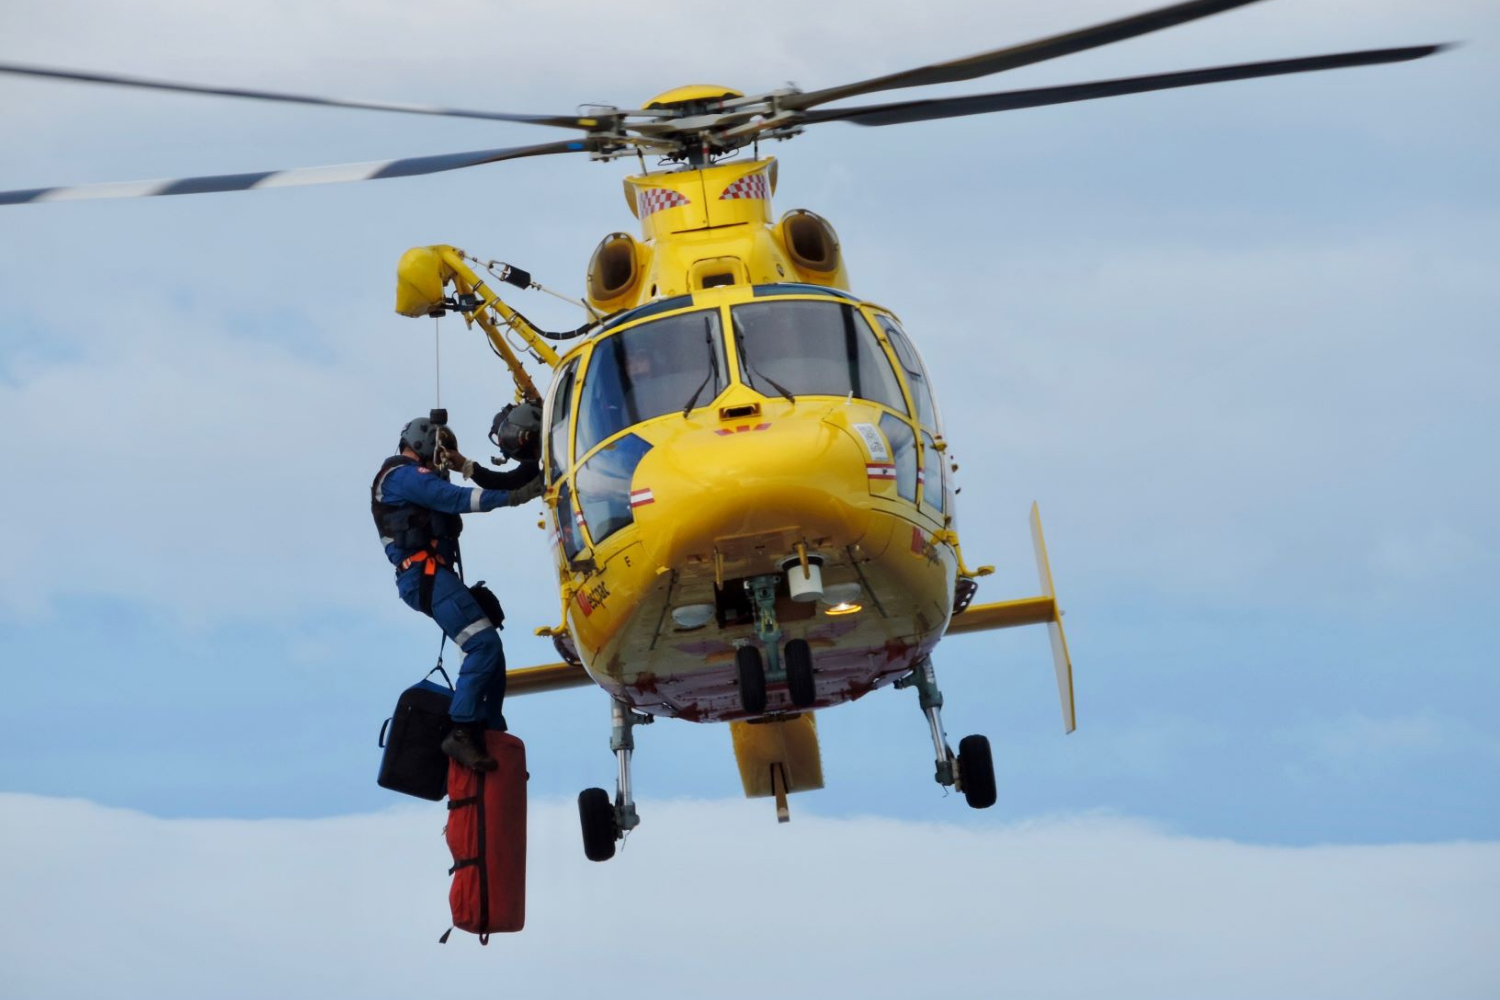 emergency services helicopter using radio